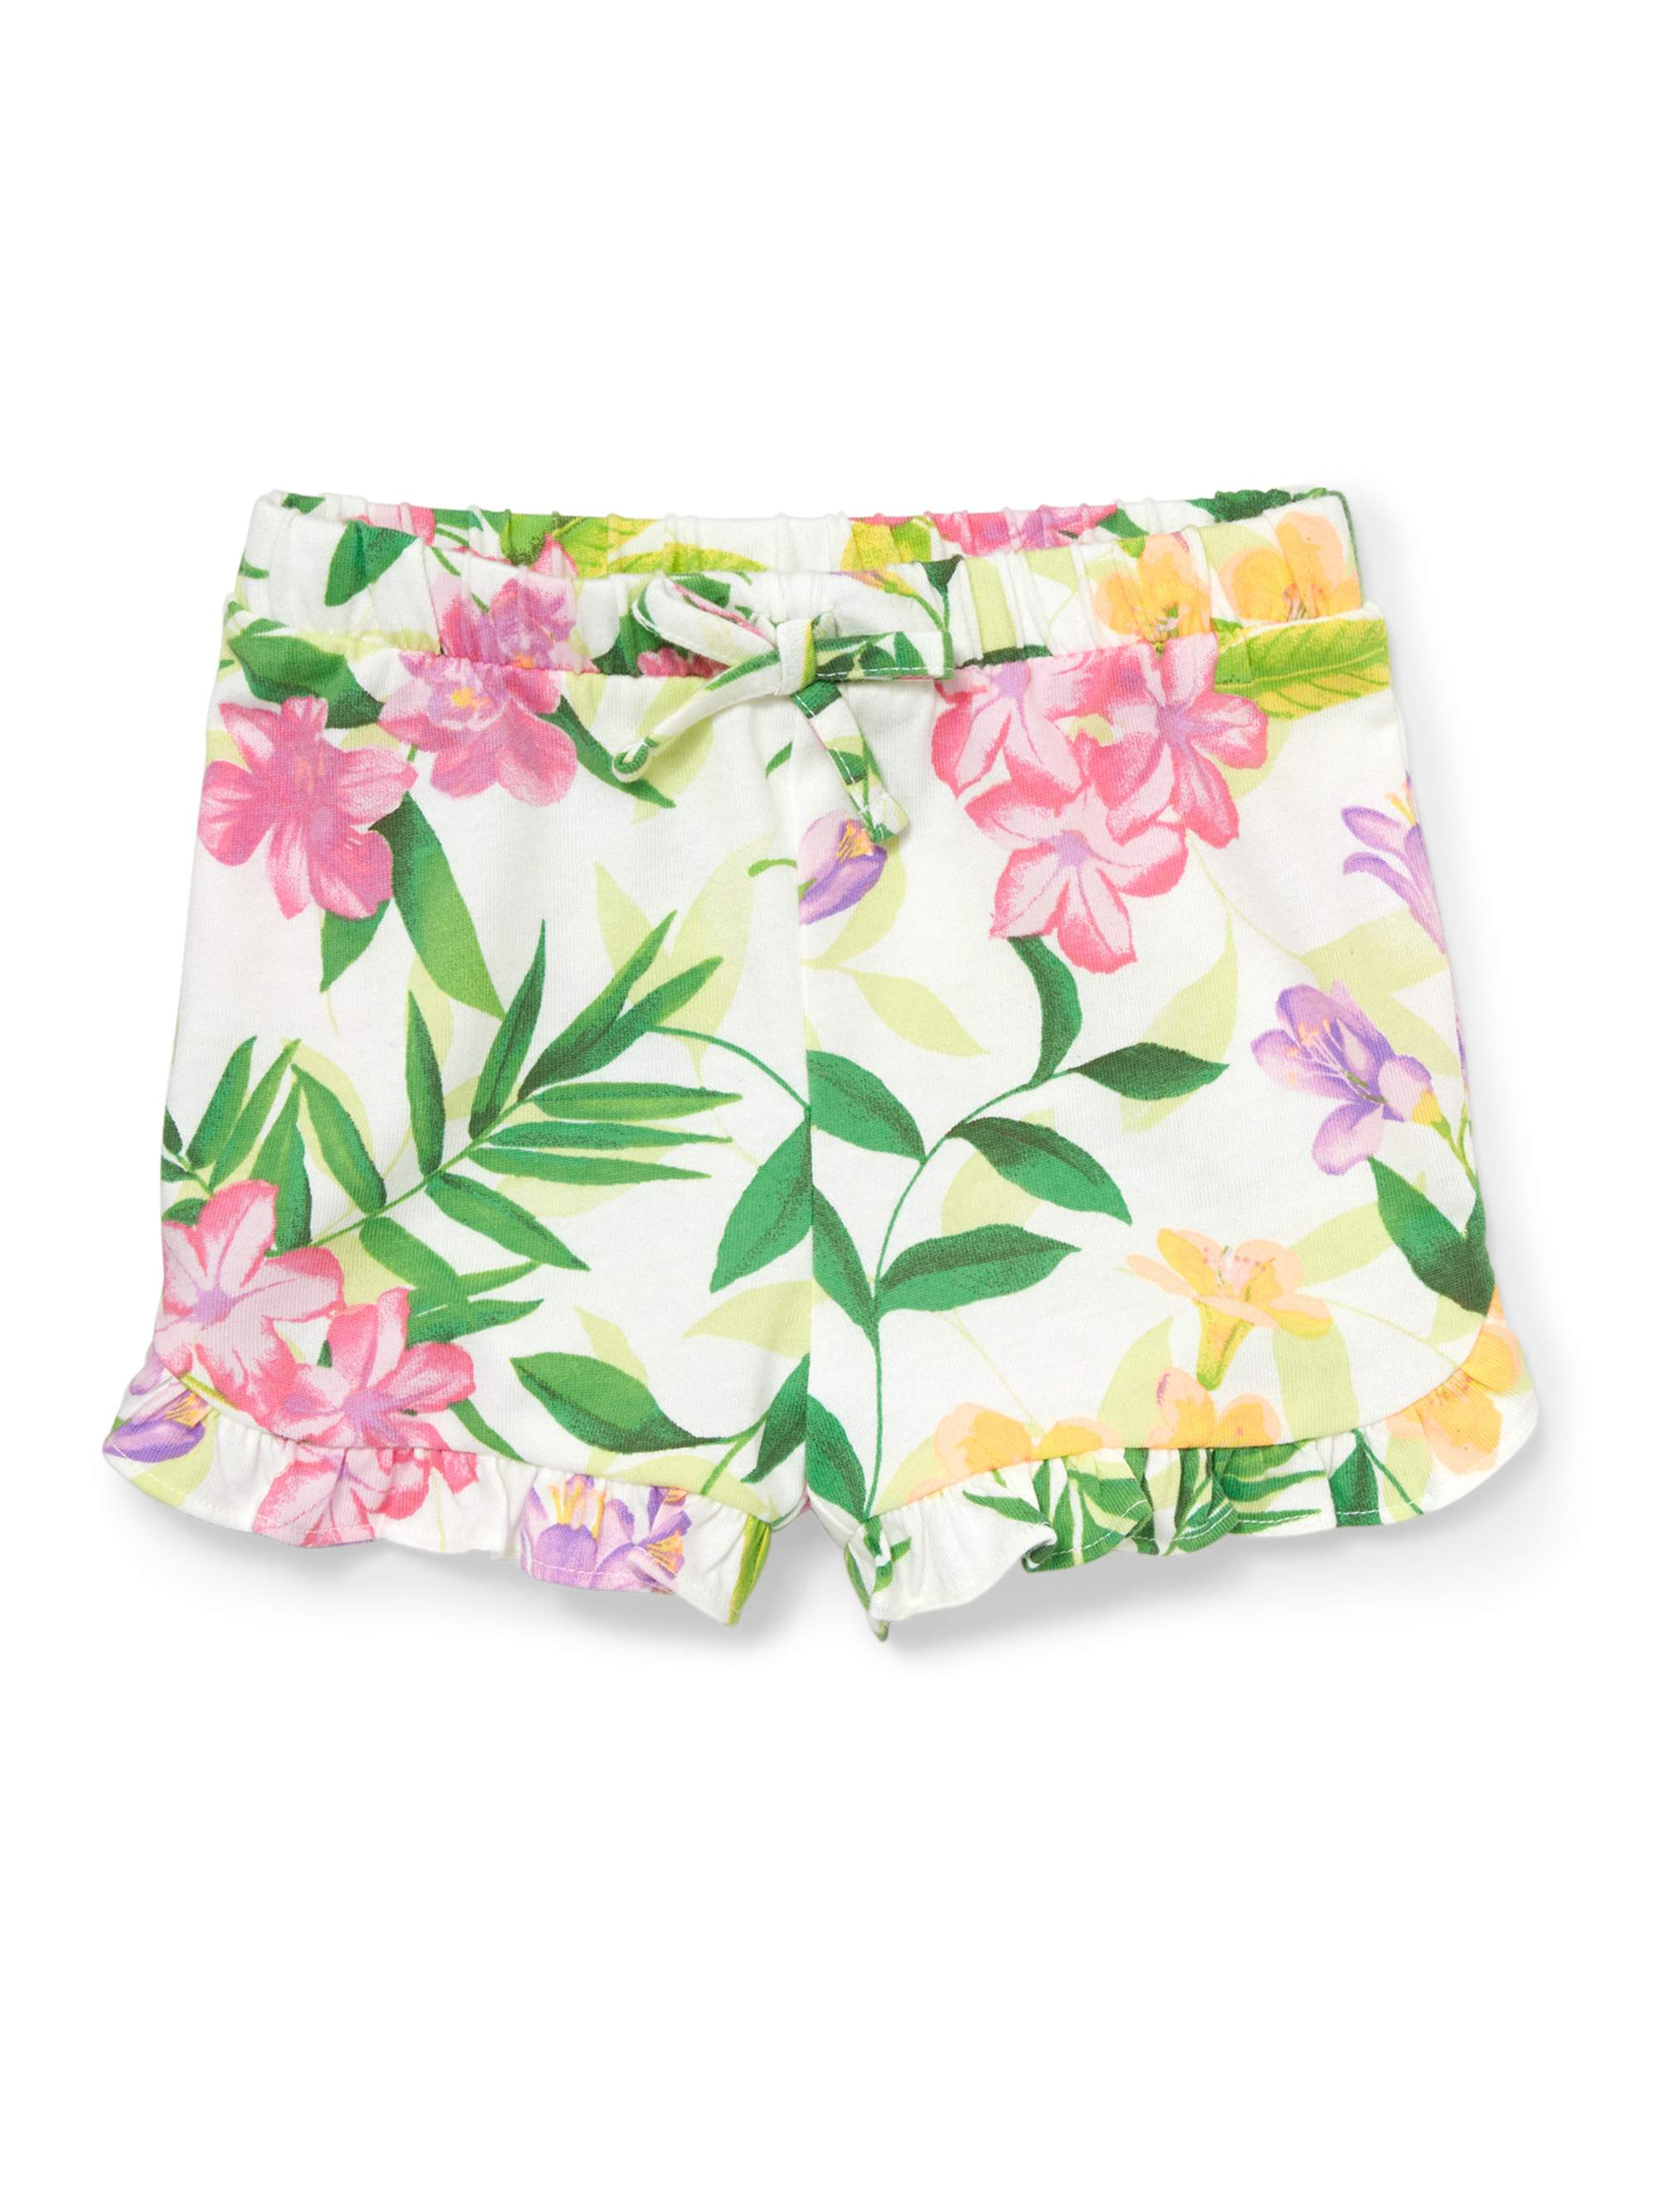 Children's Place Toddler Girls' Tropical Floral Knit Shorts